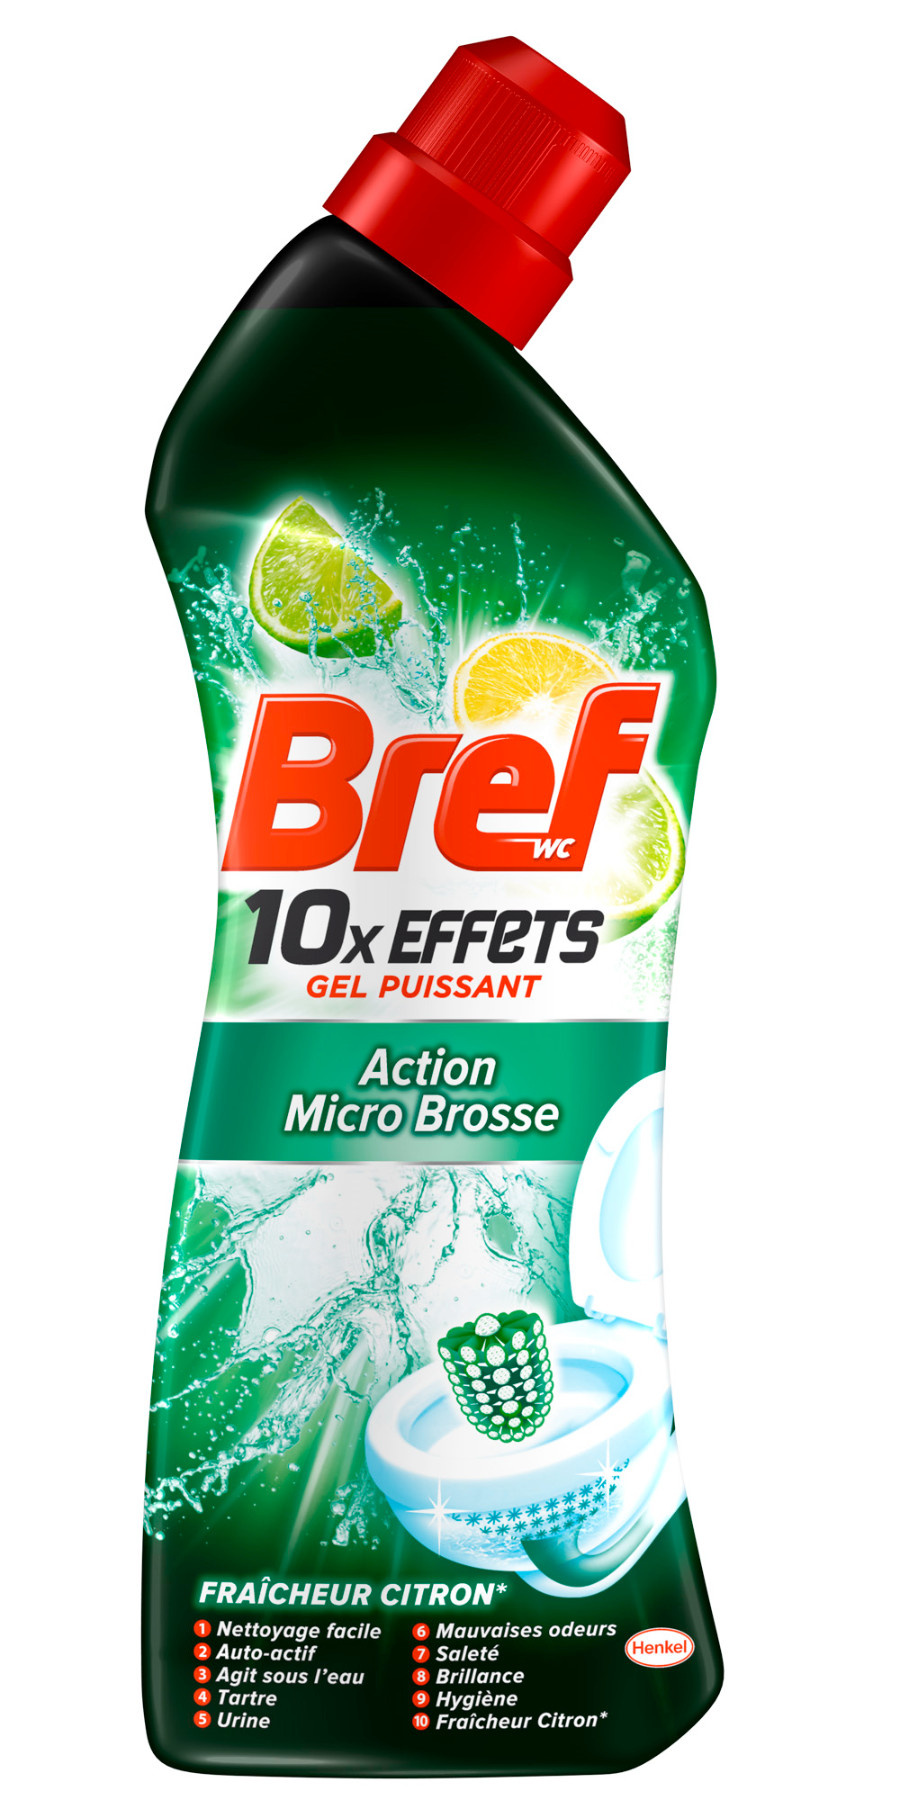 bref wc gel nettoyant wc 10x effets micro brosse flacon 735ml bref shoptimise. Black Bedroom Furniture Sets. Home Design Ideas